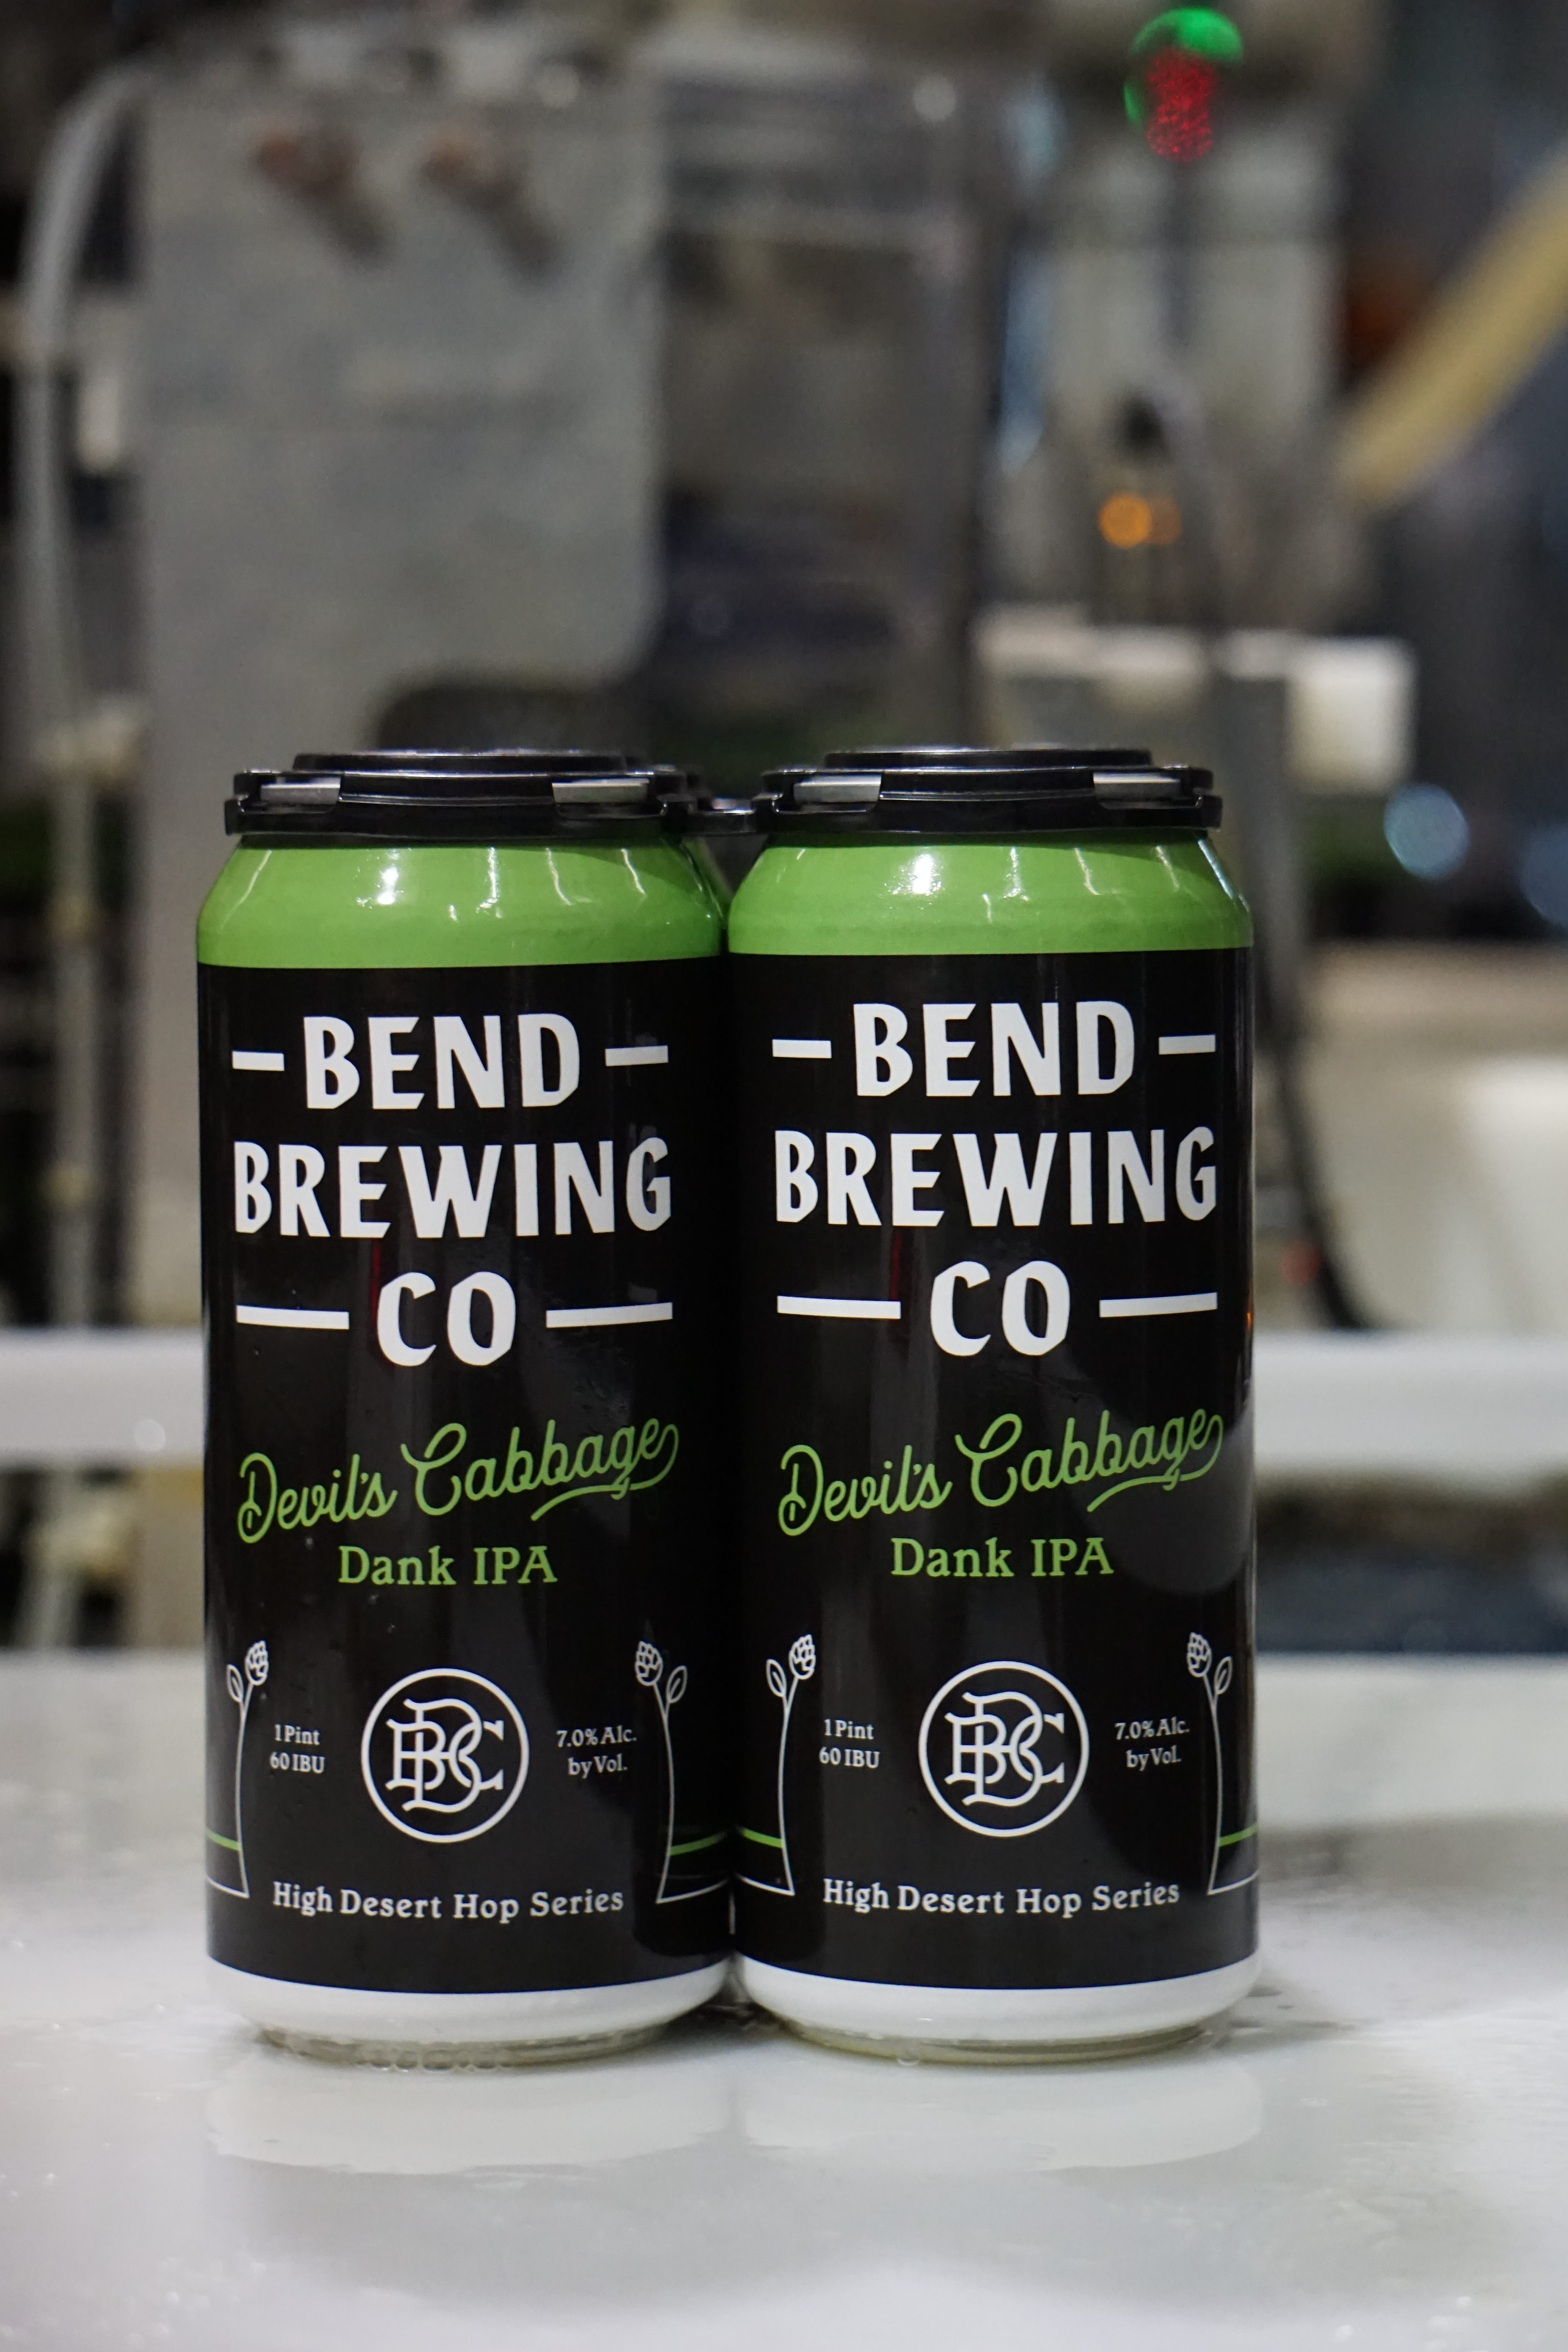 image of Devil's Cabbage cans courtesy of Bend Brewing Co.